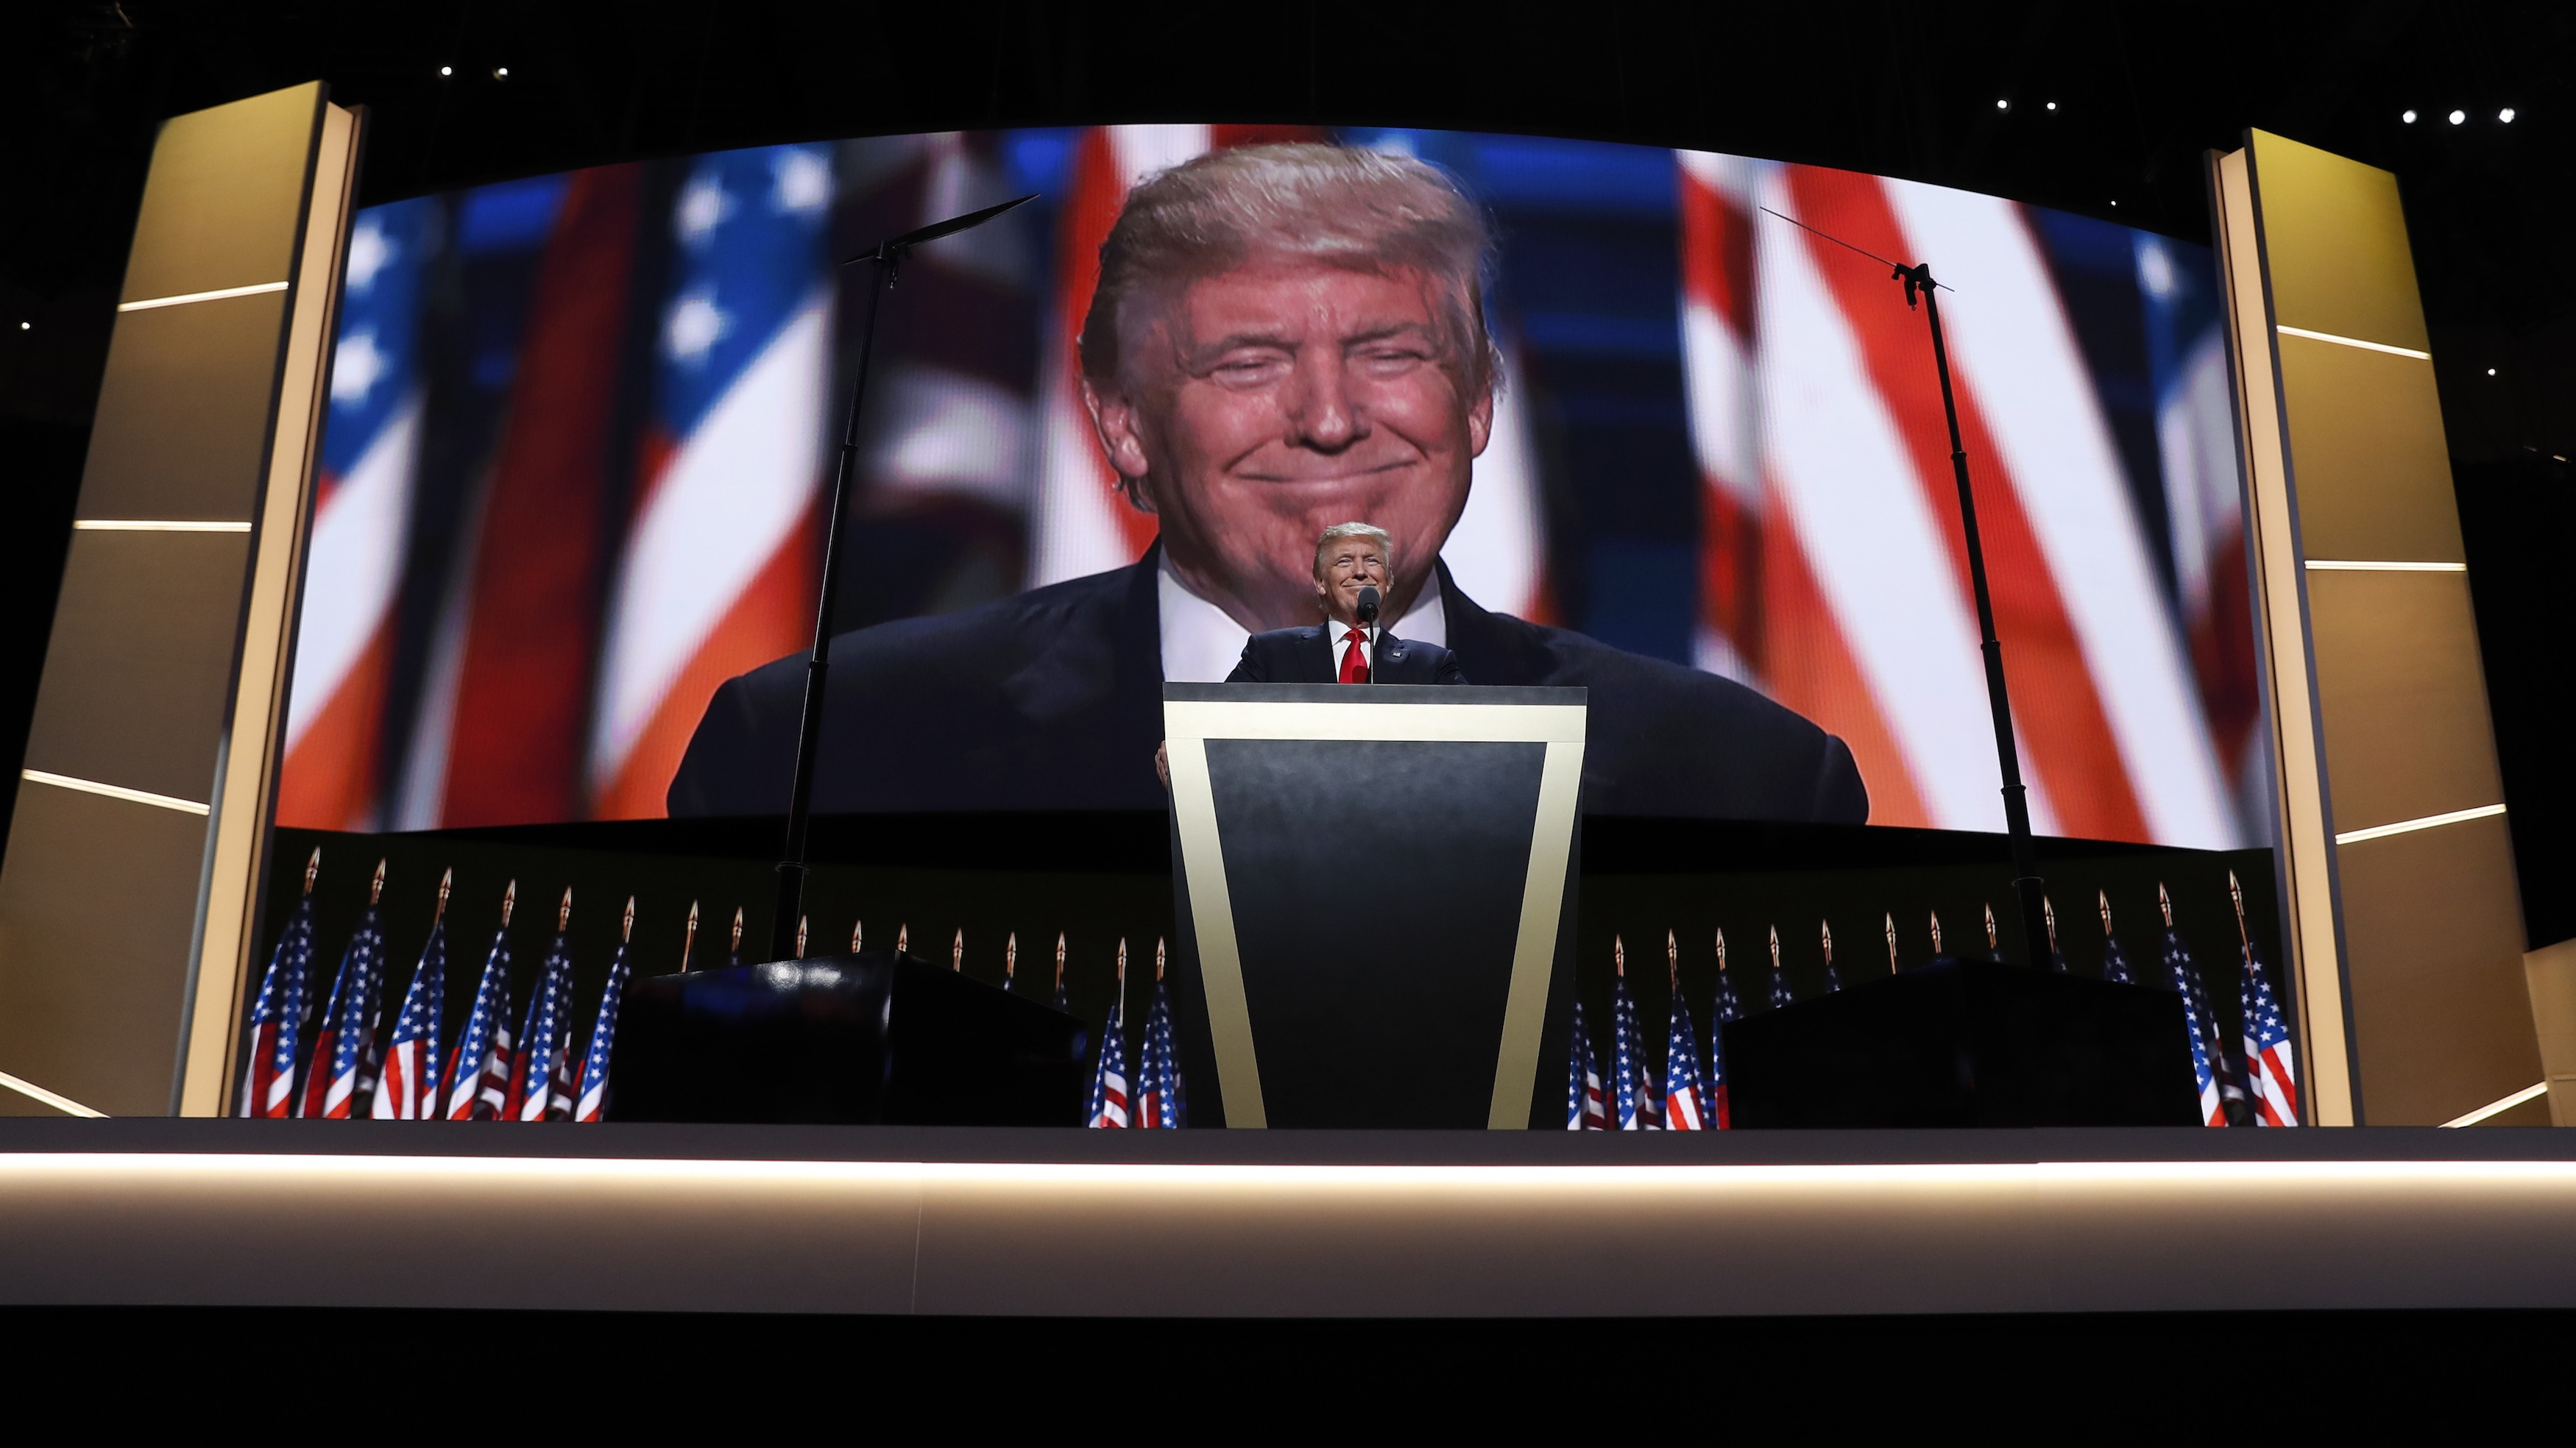 Donald Trump addresses the Republican National Convention in Cleveland.